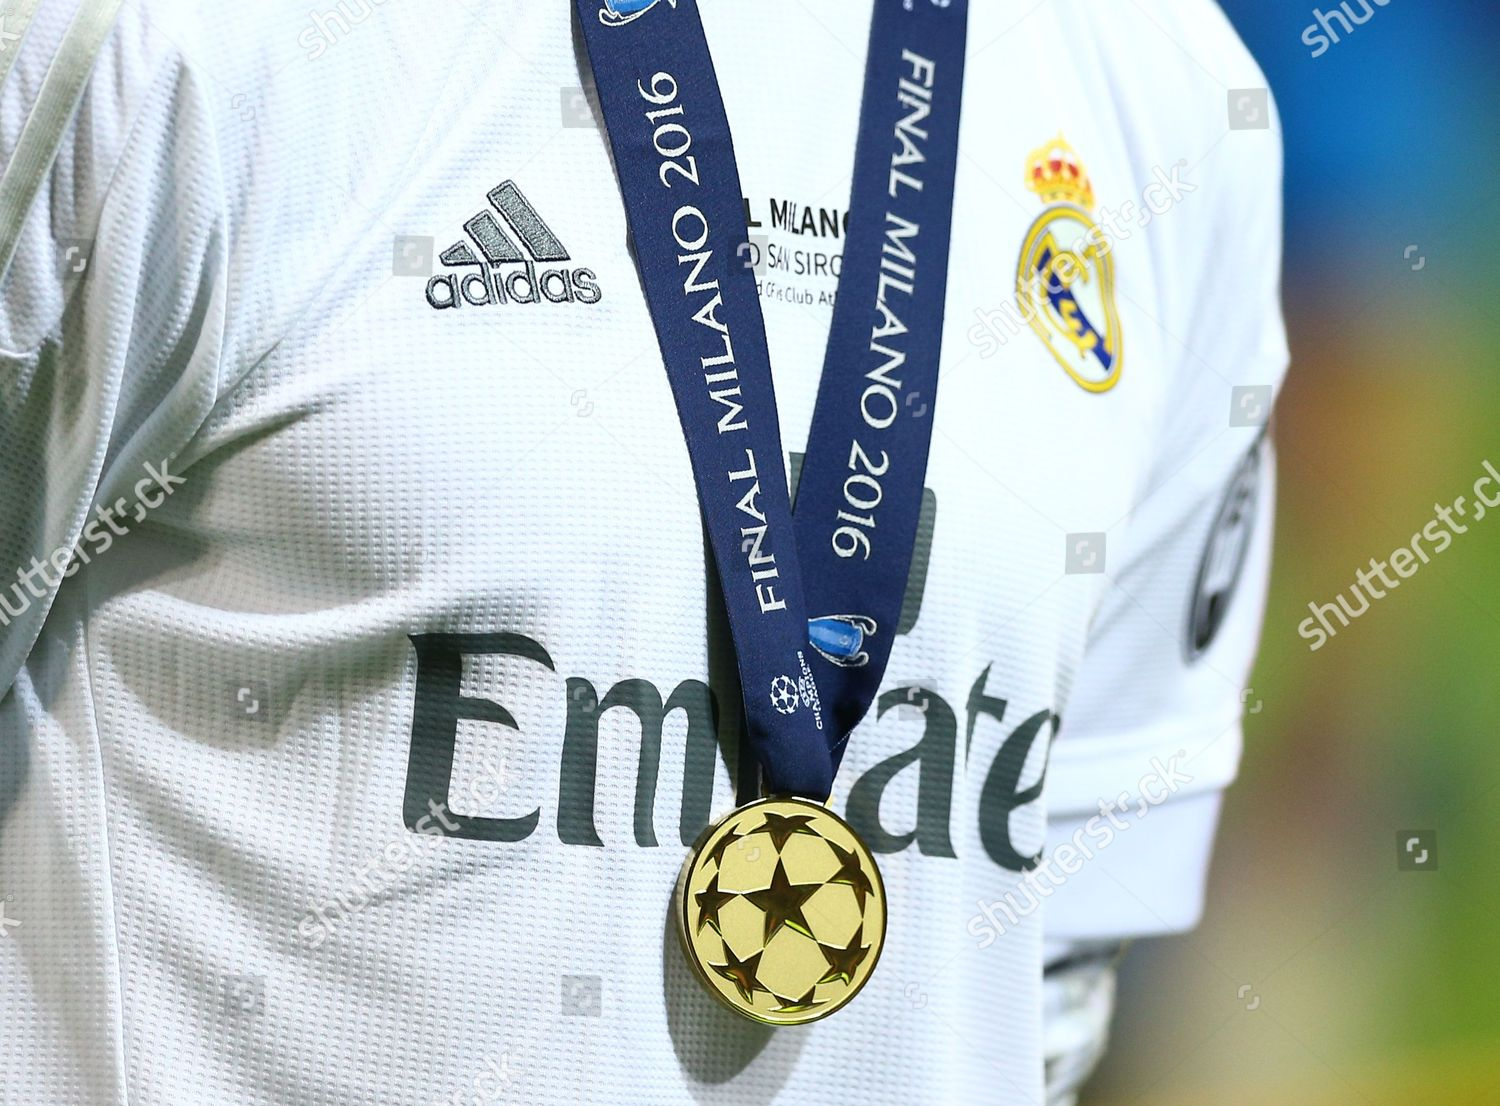 big sale 642c7 42c20 winners medal Cristiano Ronaldo Real Madrid during Editorial ...